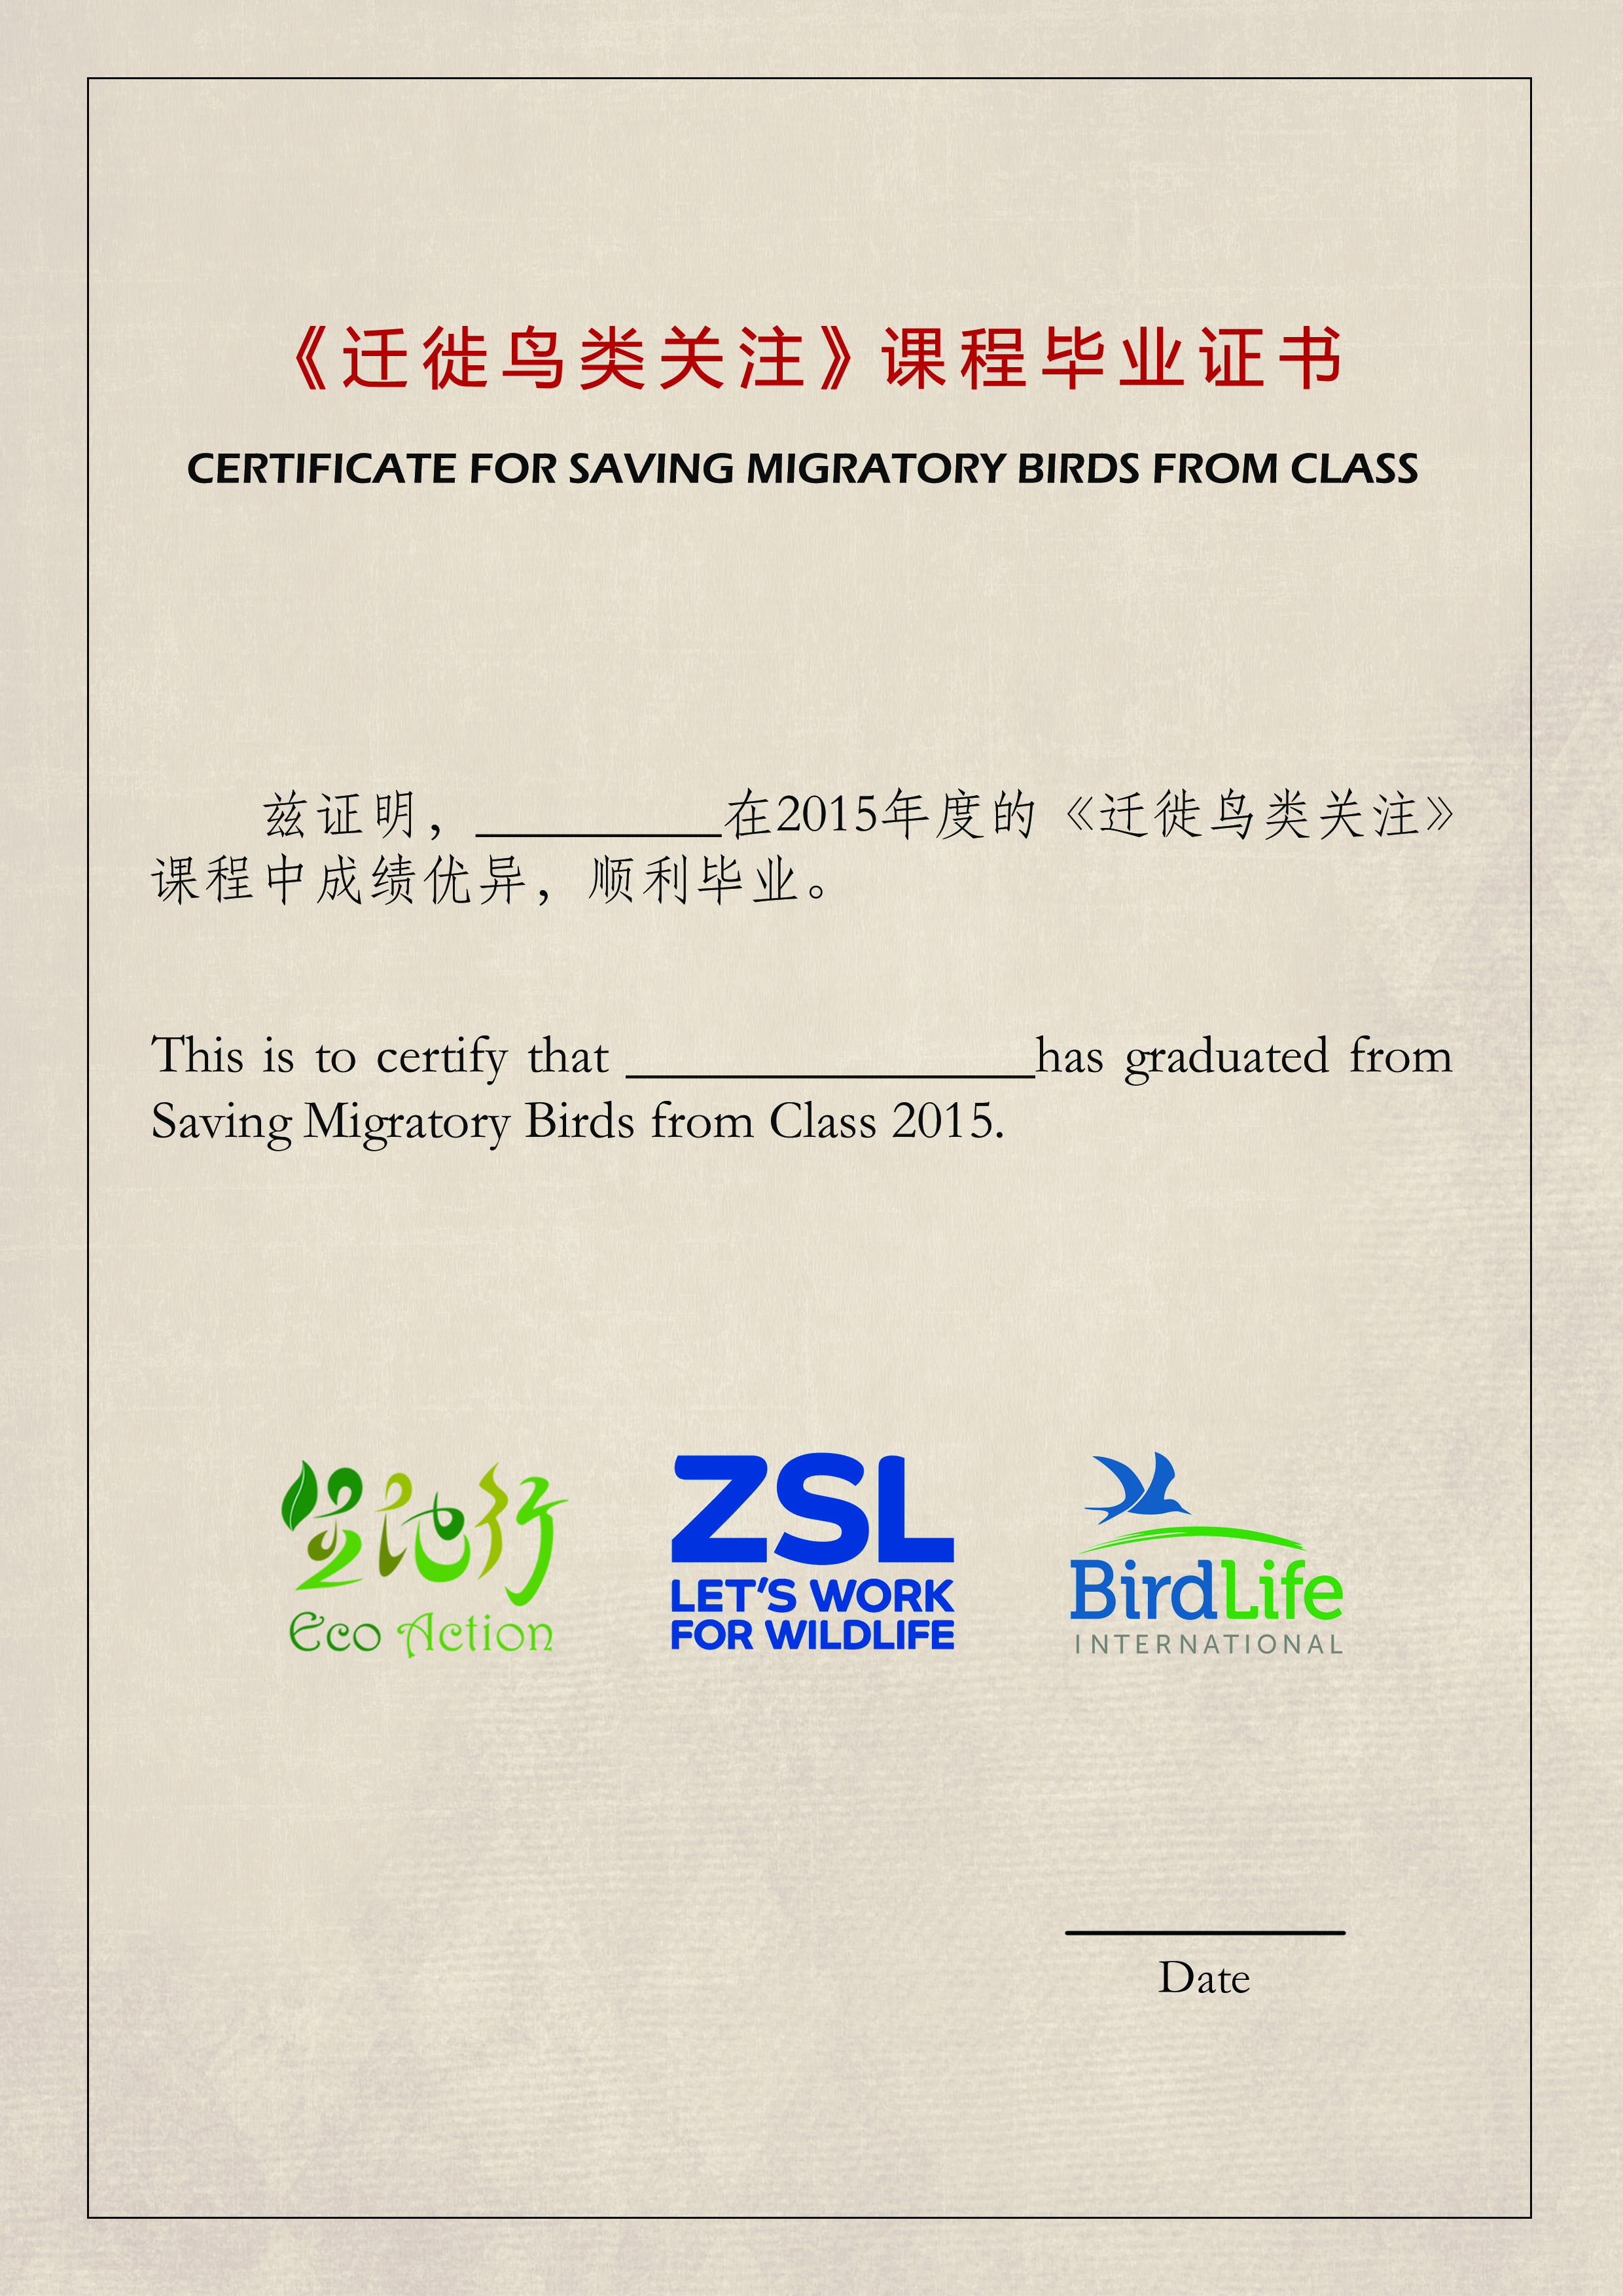 Certificate for Saving Migratory Birds from Class